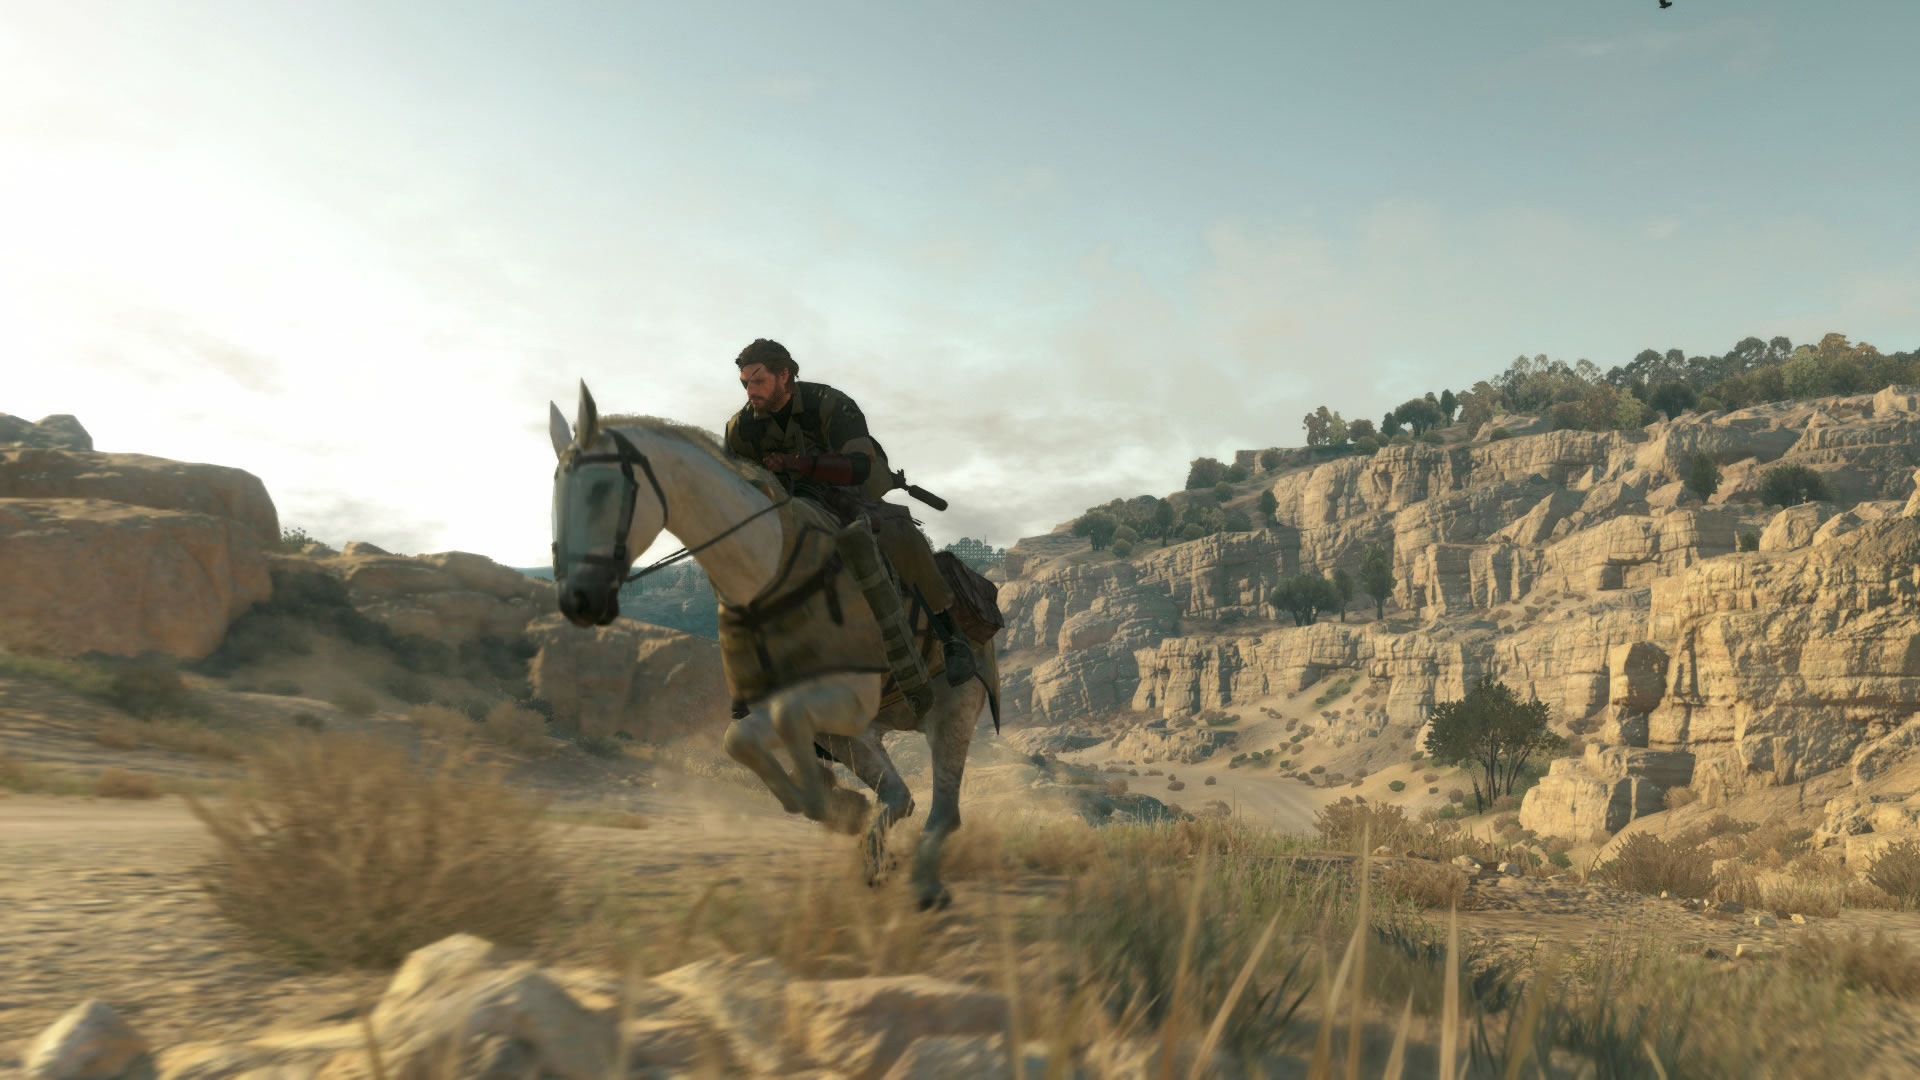 Metal-Gear-Solid-V-The-Phantom-Pain-Screenshot-2